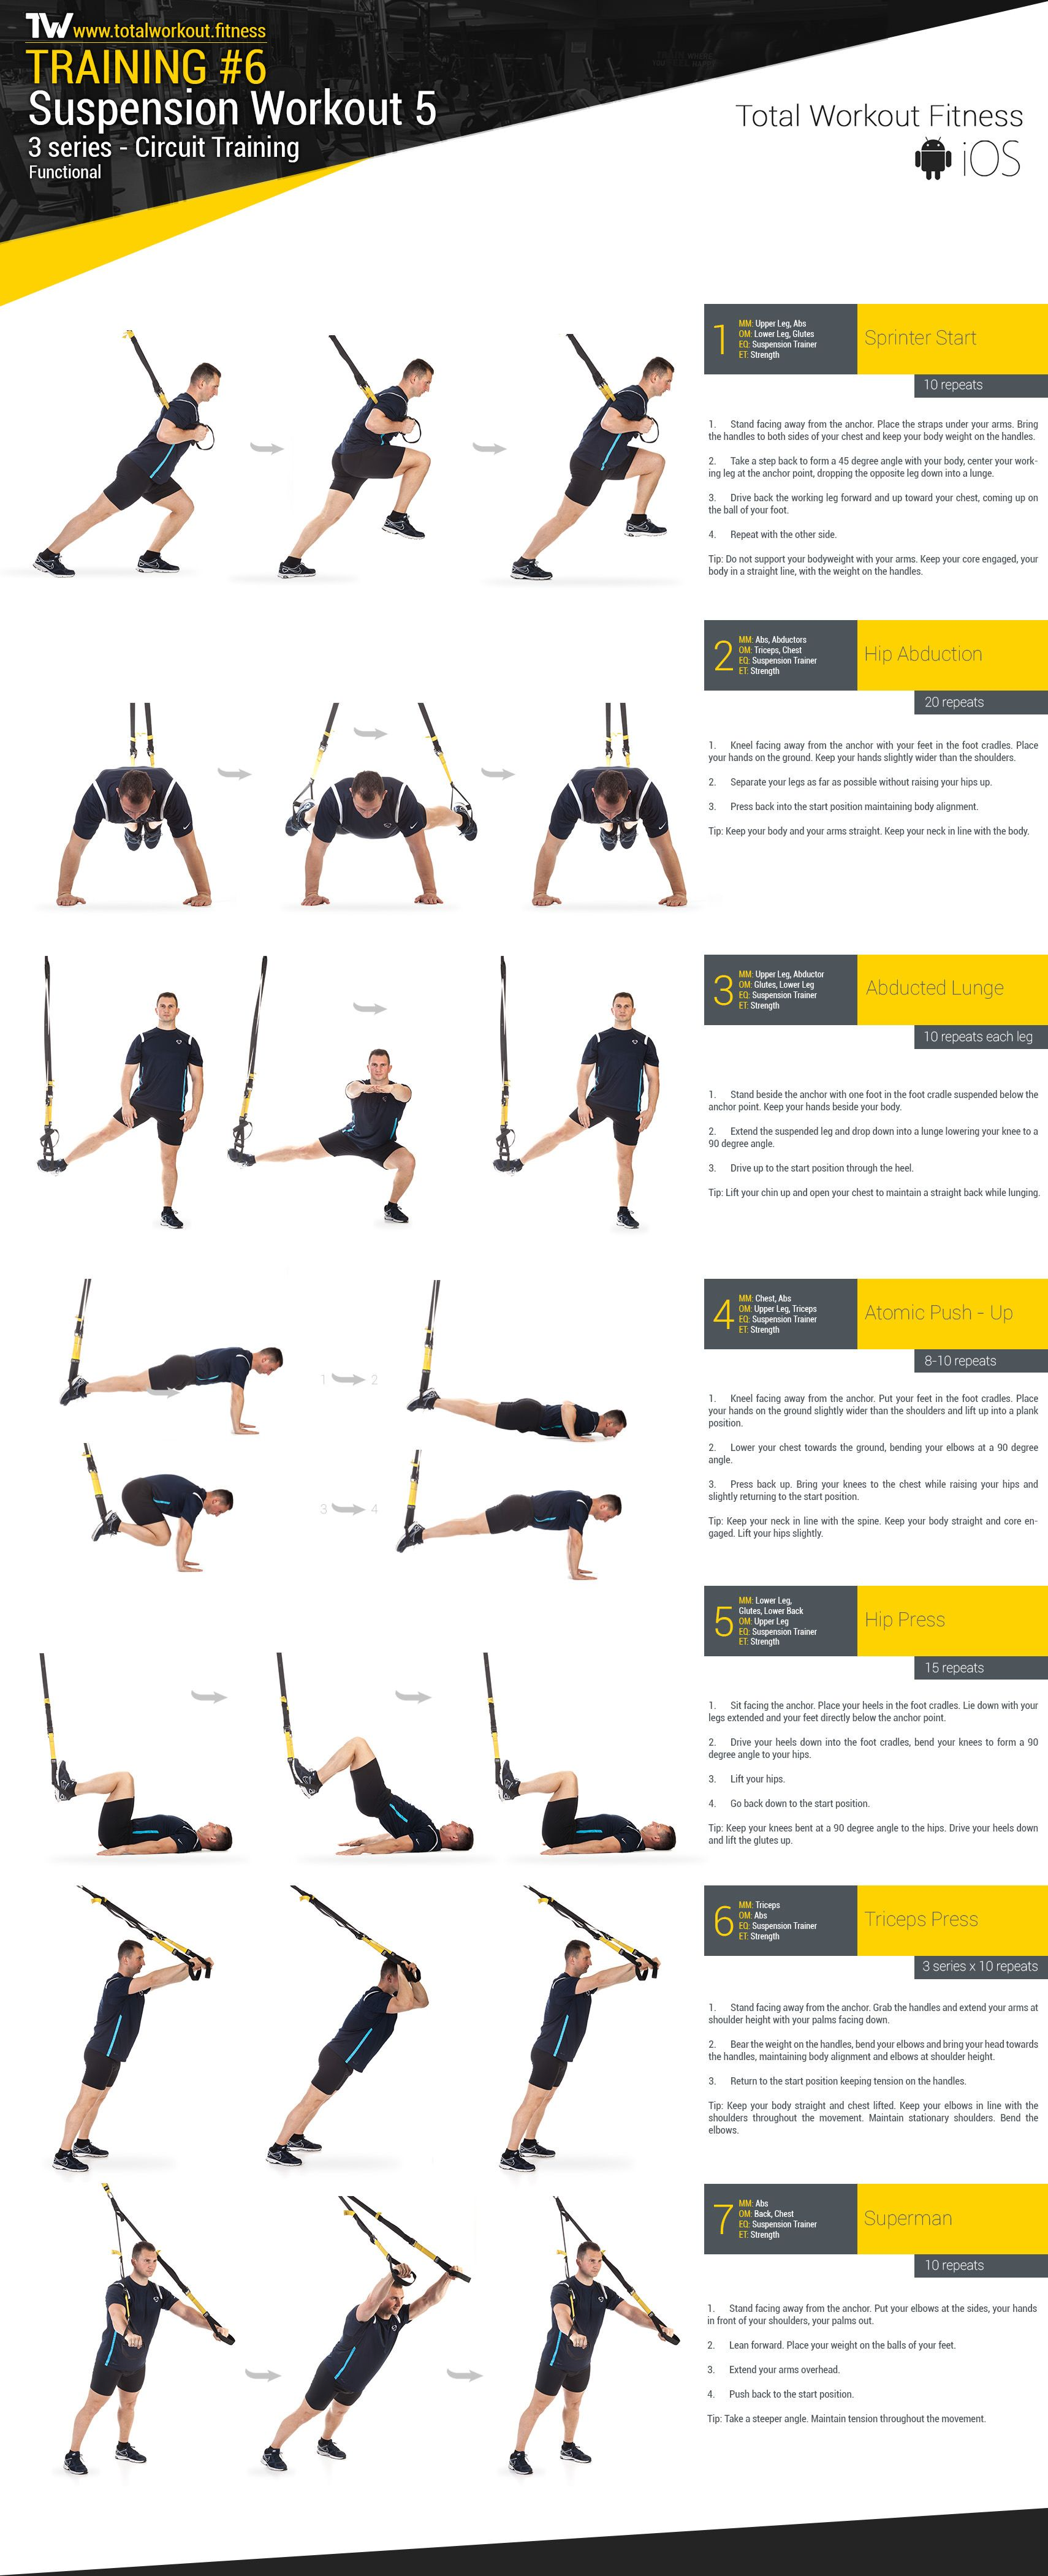 Training 6 Suspension Workout 5 Total Workout Fitness Trx Ejercicios Rutinas De Entrenamiento Ejercicios Musculacion